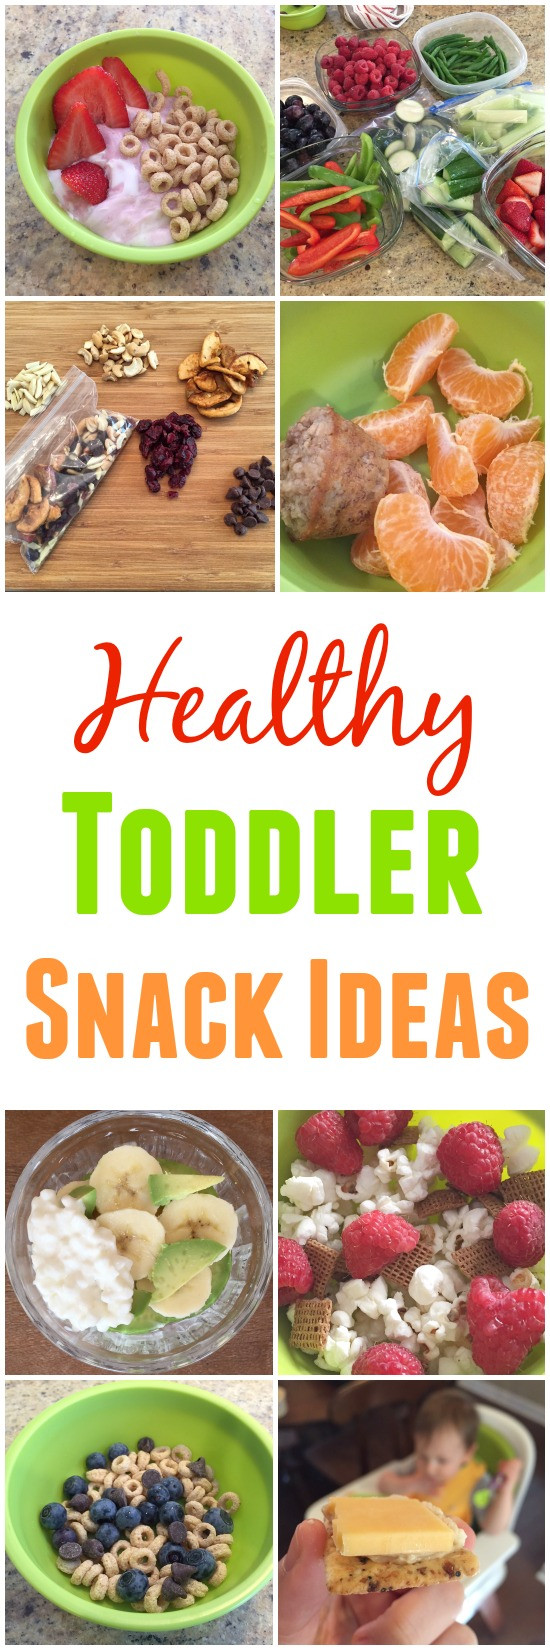 Toddlers Healthy Snacks  Healthy Toddler Snacks